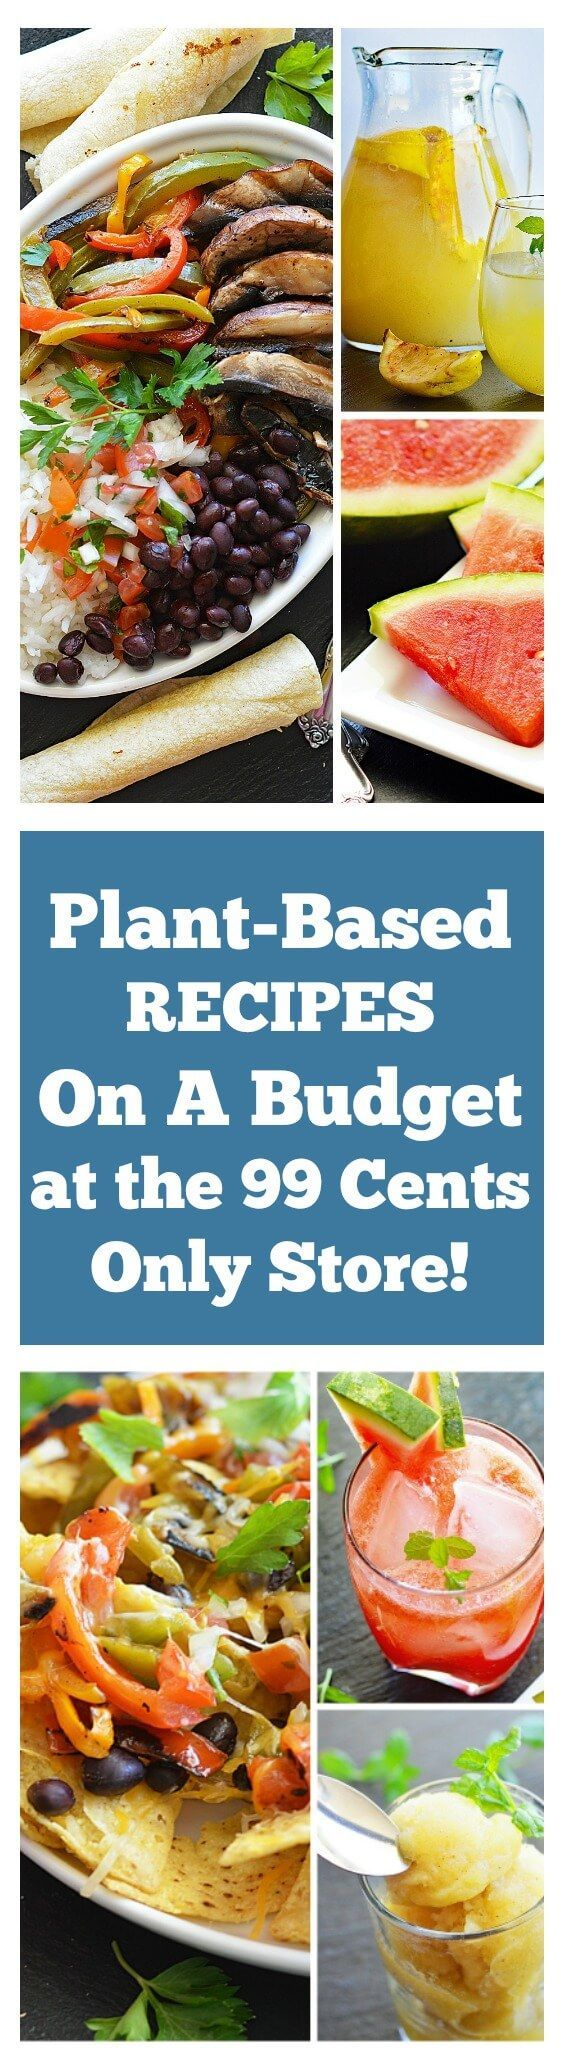 47642 best Favorite Recipes images on Pinterest | Easy recipes ...